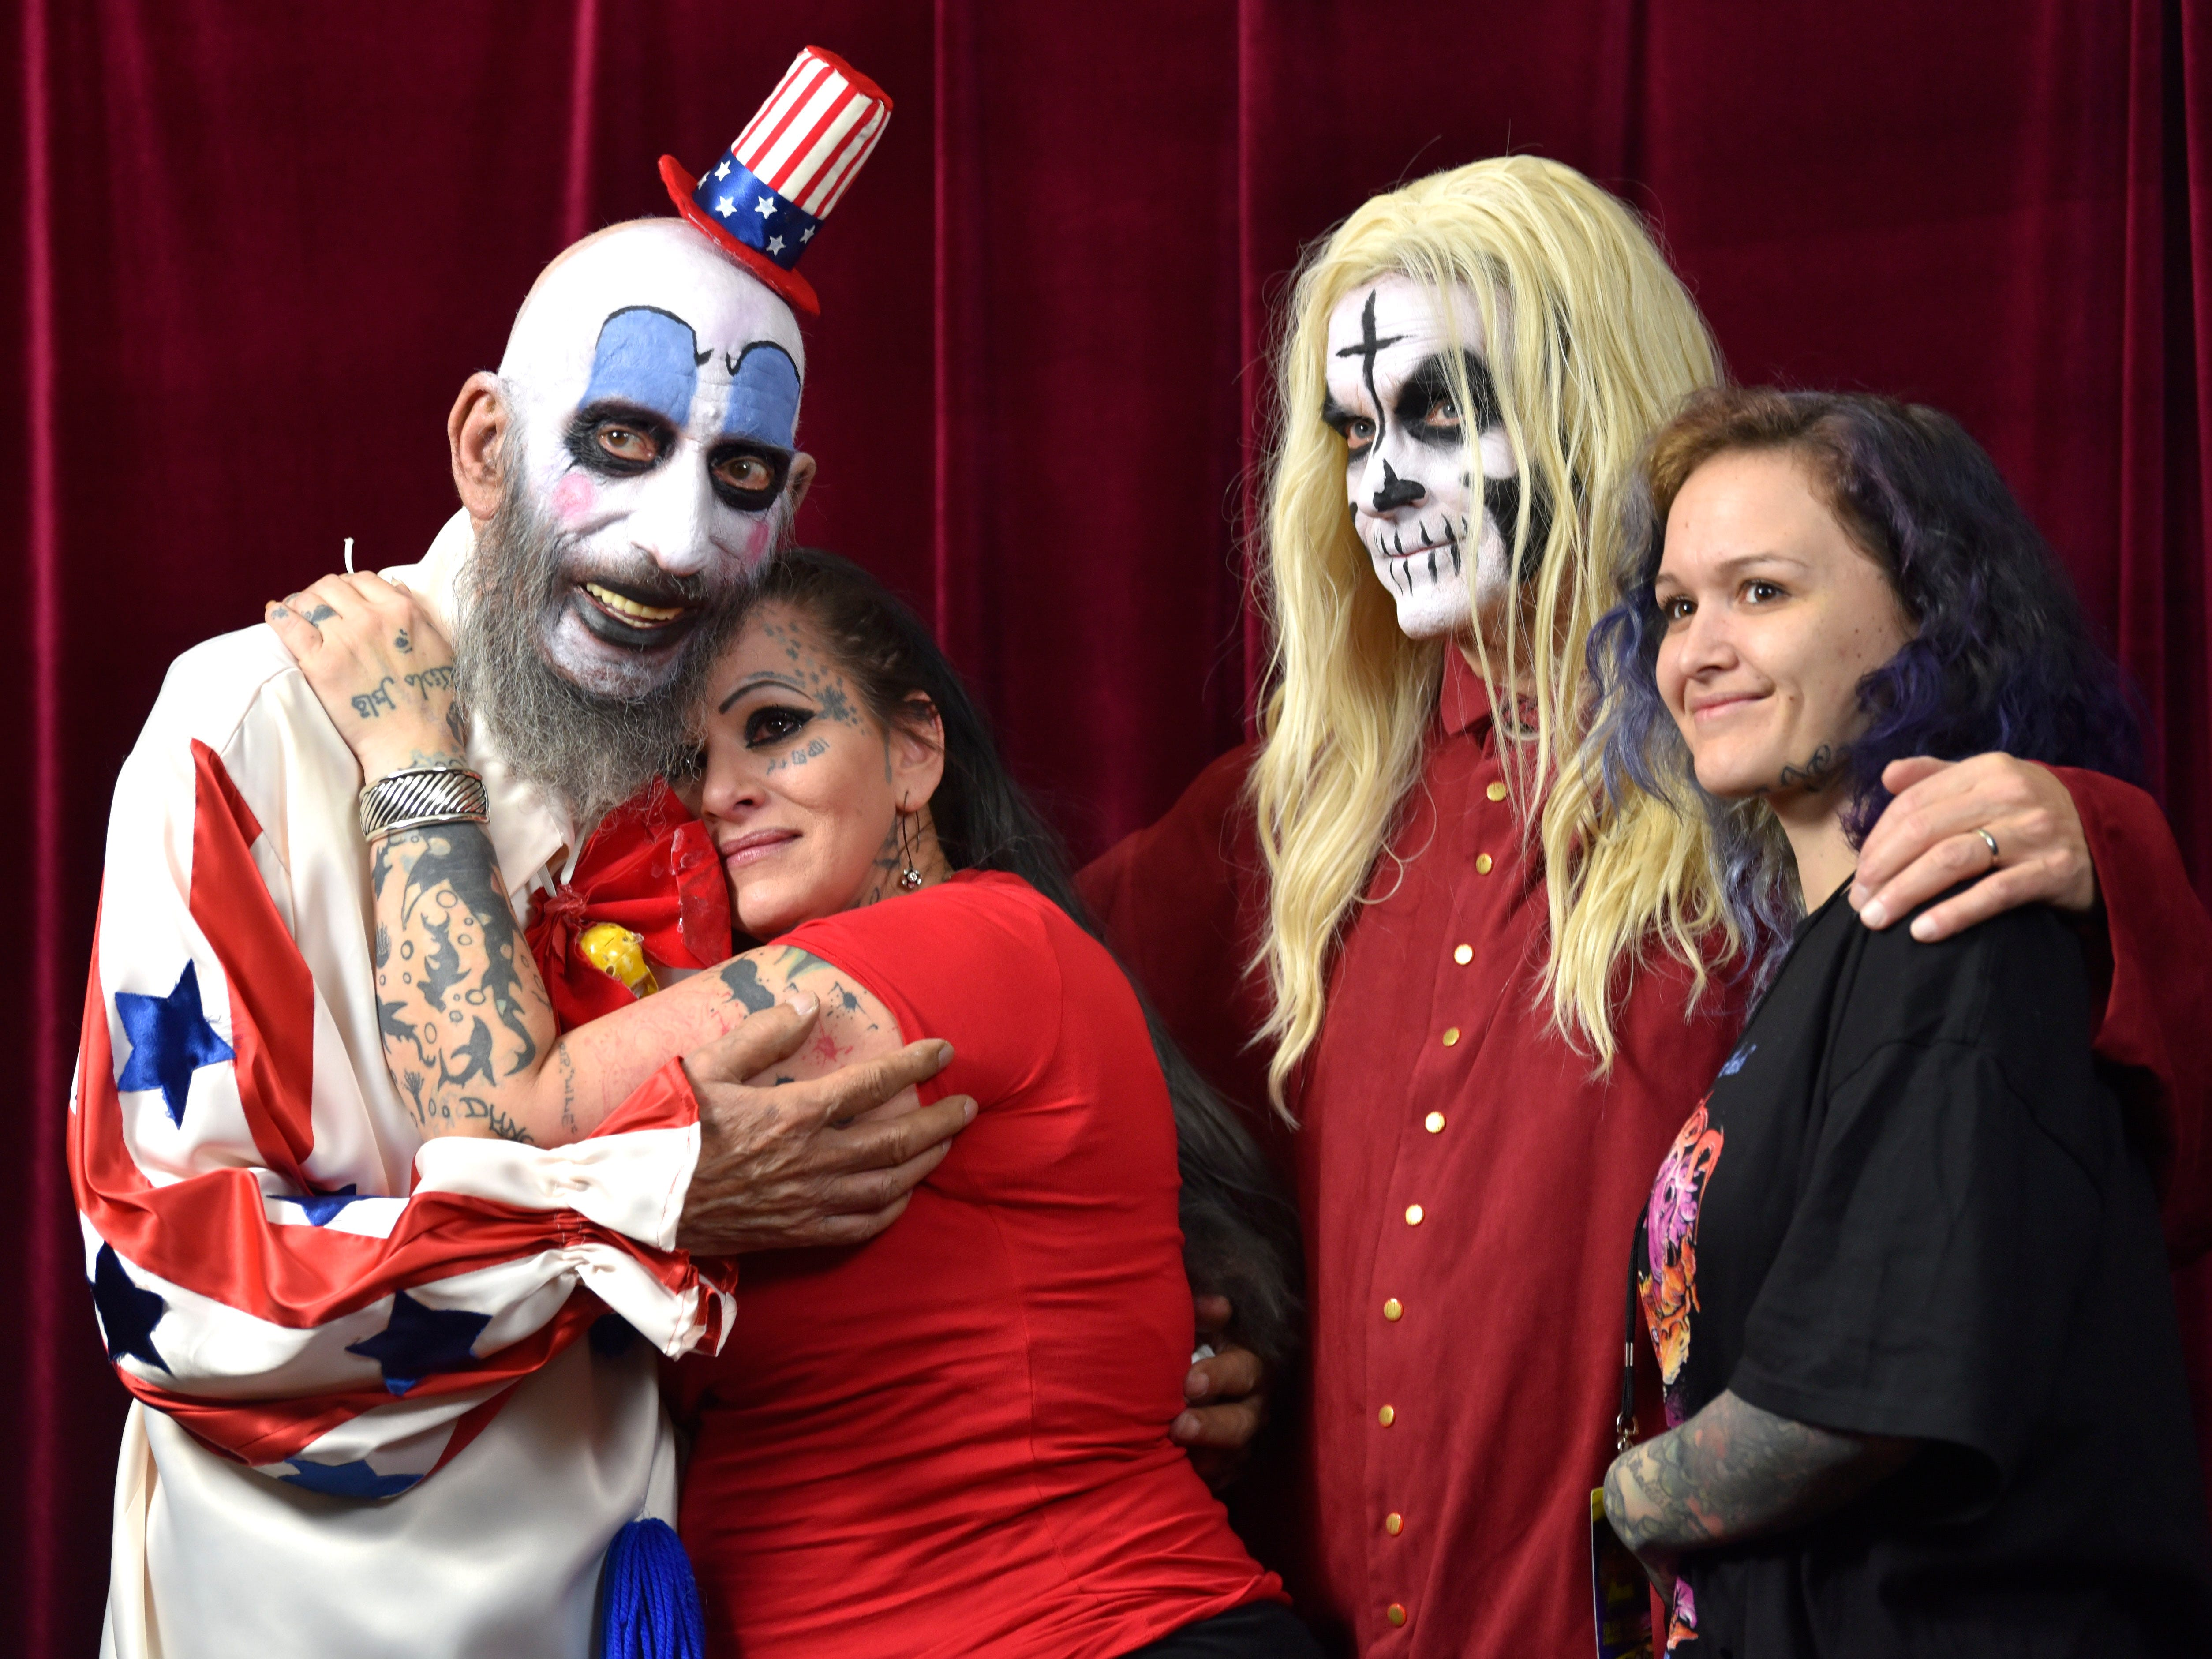 Rob Zombie's slasher / horror movie House of 1000 Corpses characters 'Captain Spaulding,' left, portrayed by Sid Haig, and 'Otis B. Driftwood,' right, portrayed by Bill Moseley, pose with Wendy 'The Tattoo Artist' Whalin, 48, and her daughter, Brittany 'Killa B', respectively, both of Detroit, during a Hollywood Photo Ops portrait session.